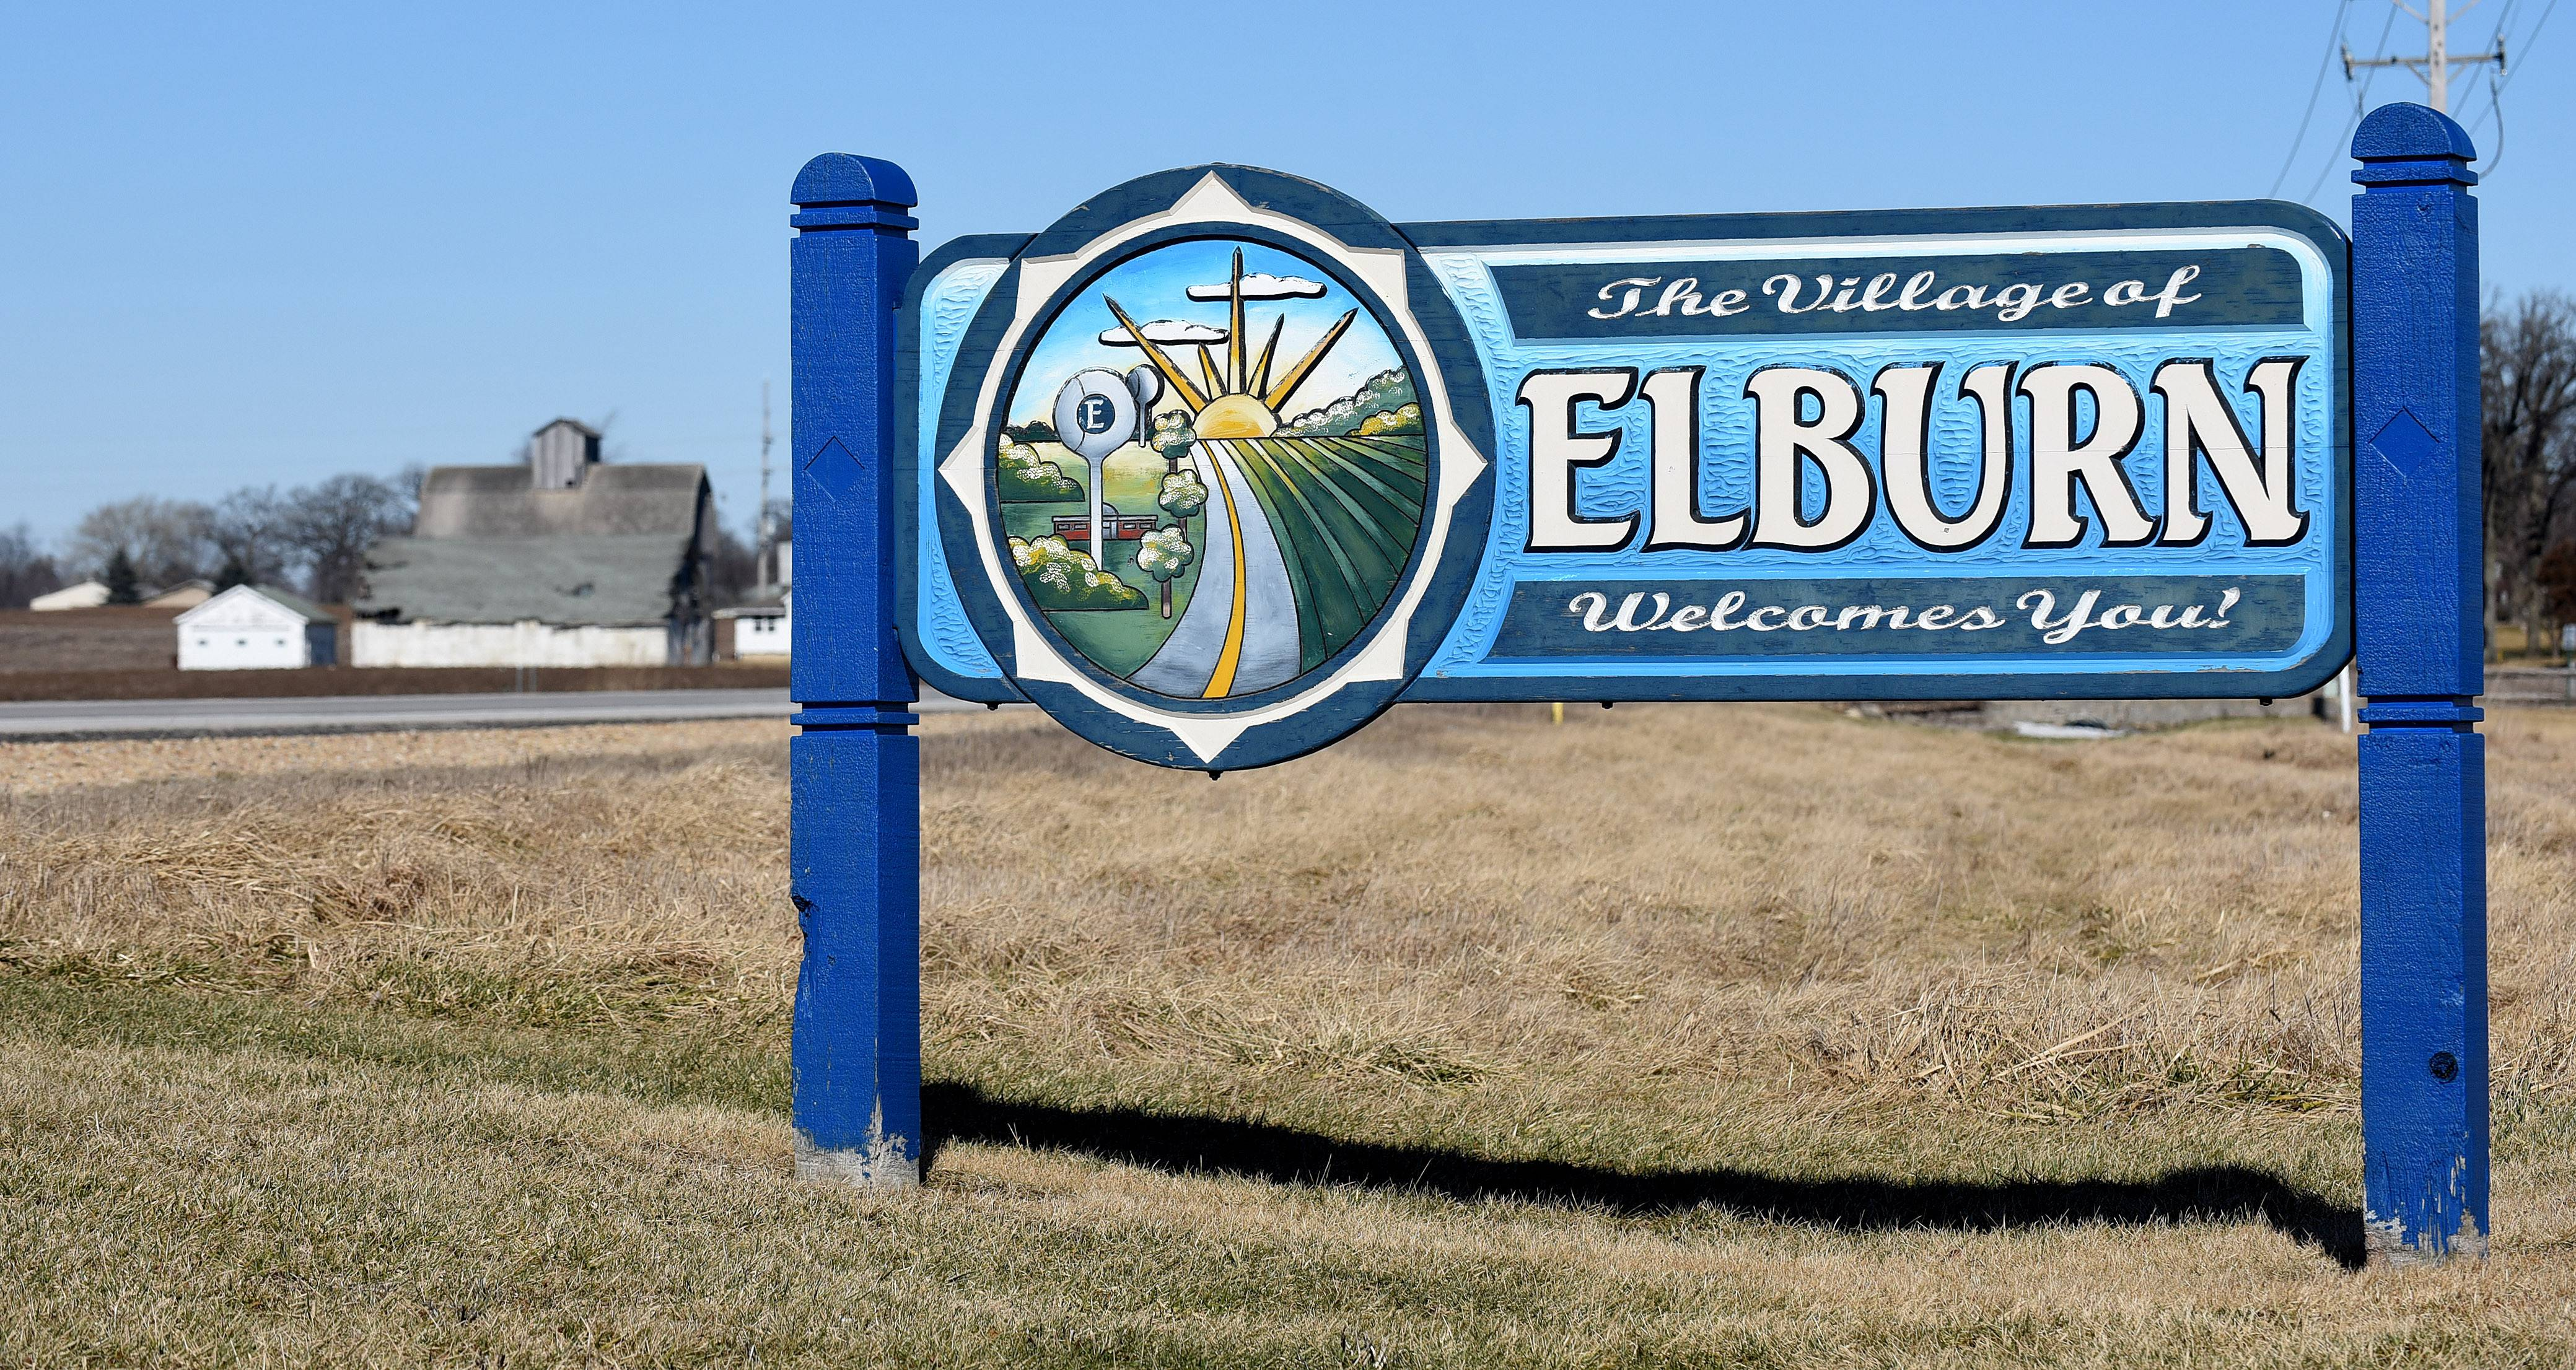 The village of Elburn was incorporated in 1886.